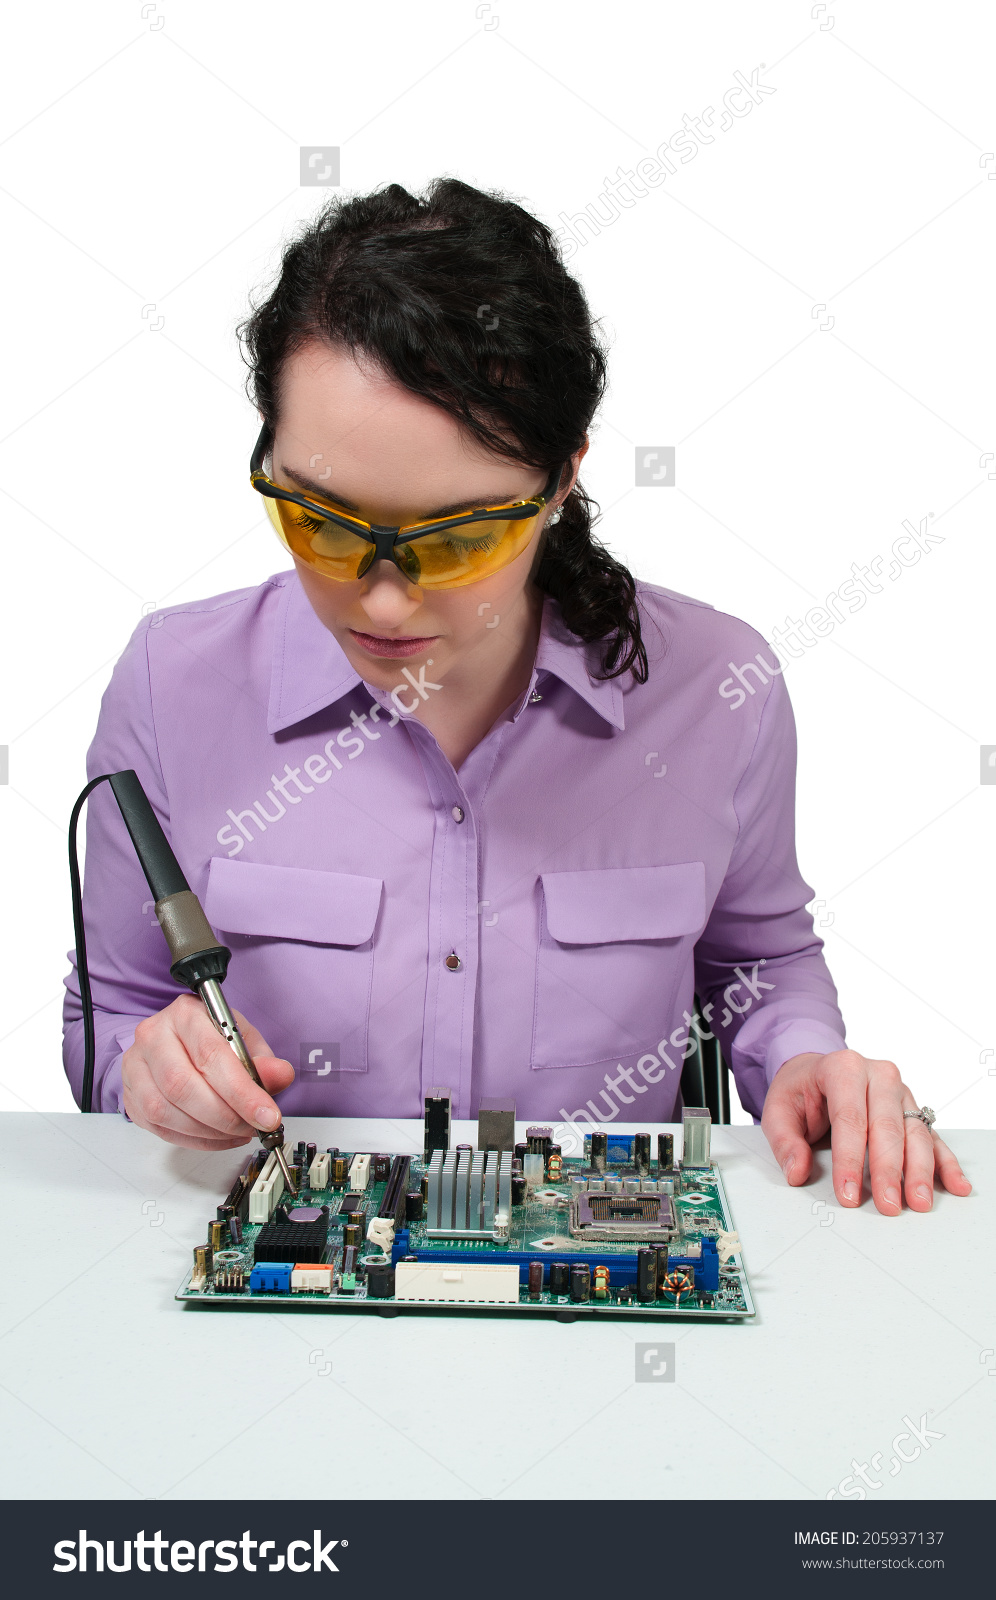 Stock Photo Aletia 164802918: Can You Spot What's Wrong With The Soldering In This Stock